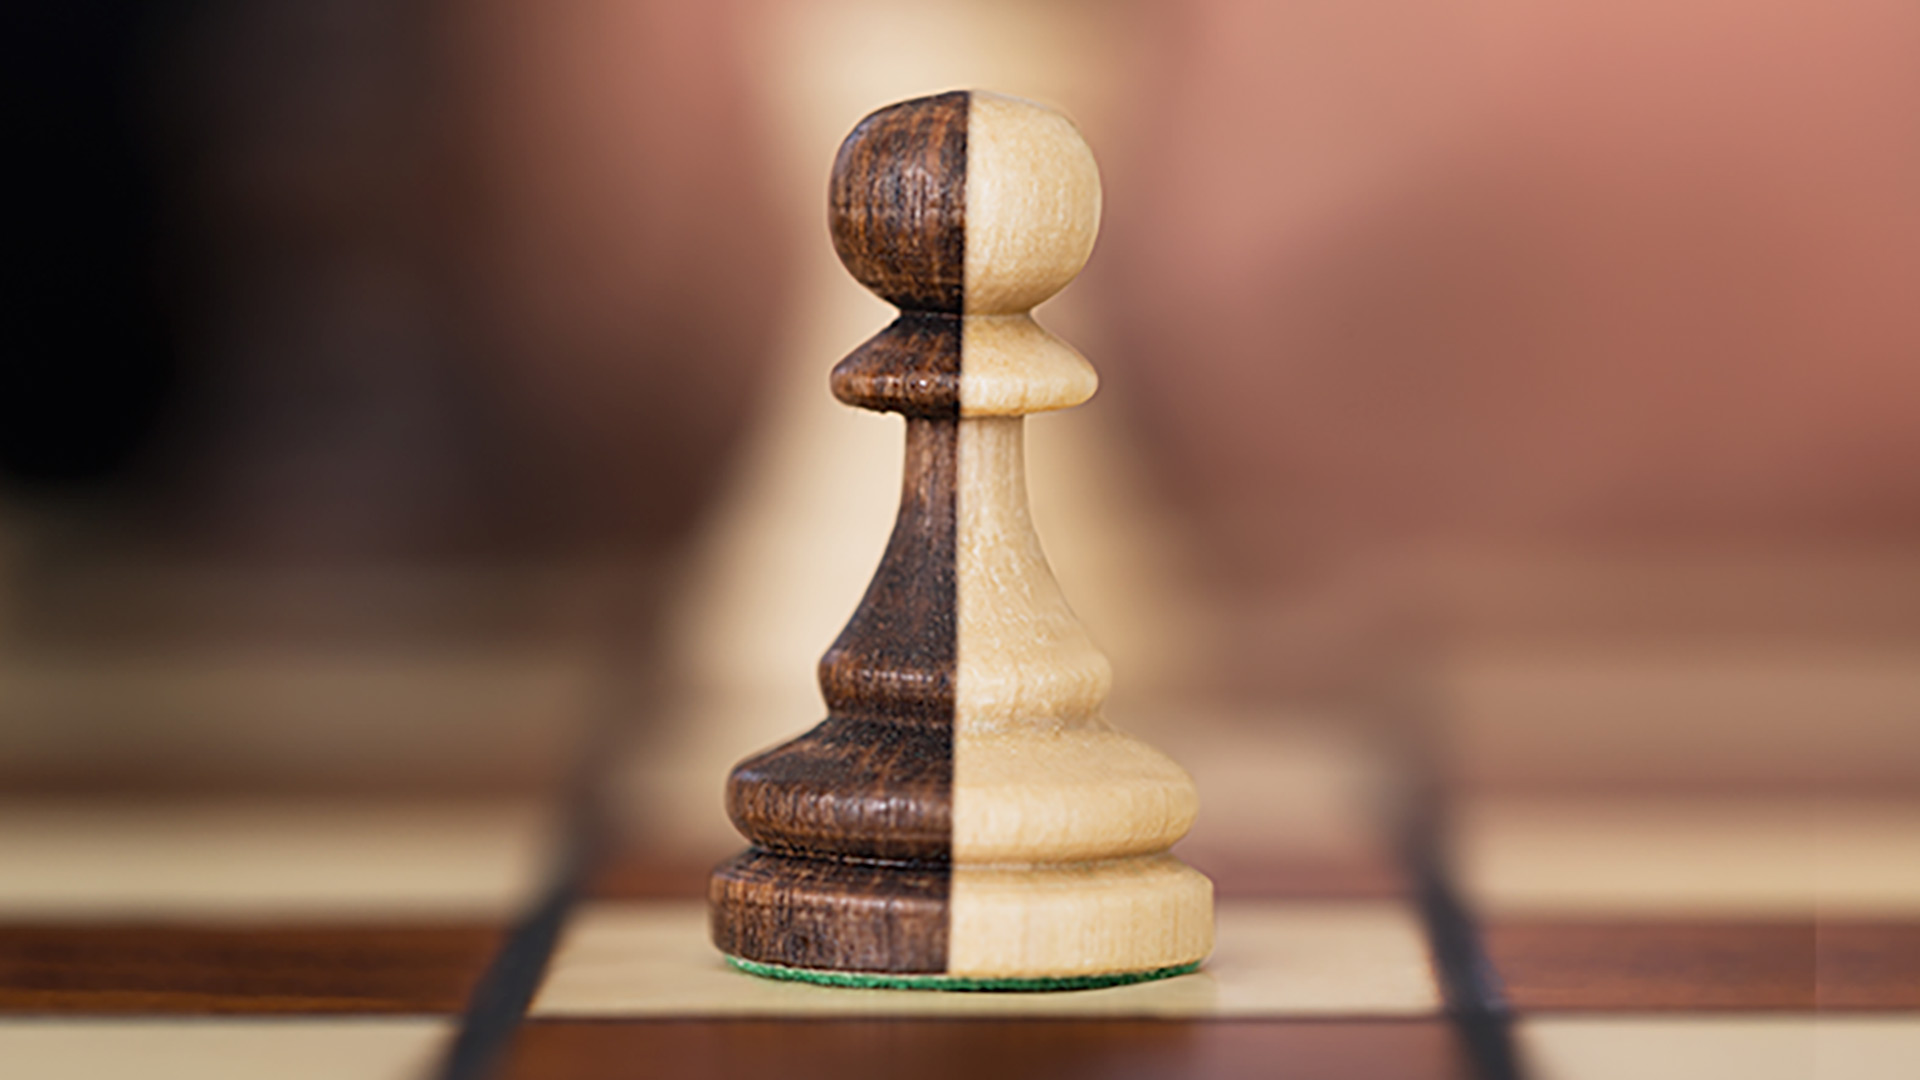 Chess pawn split into two colours: black and white